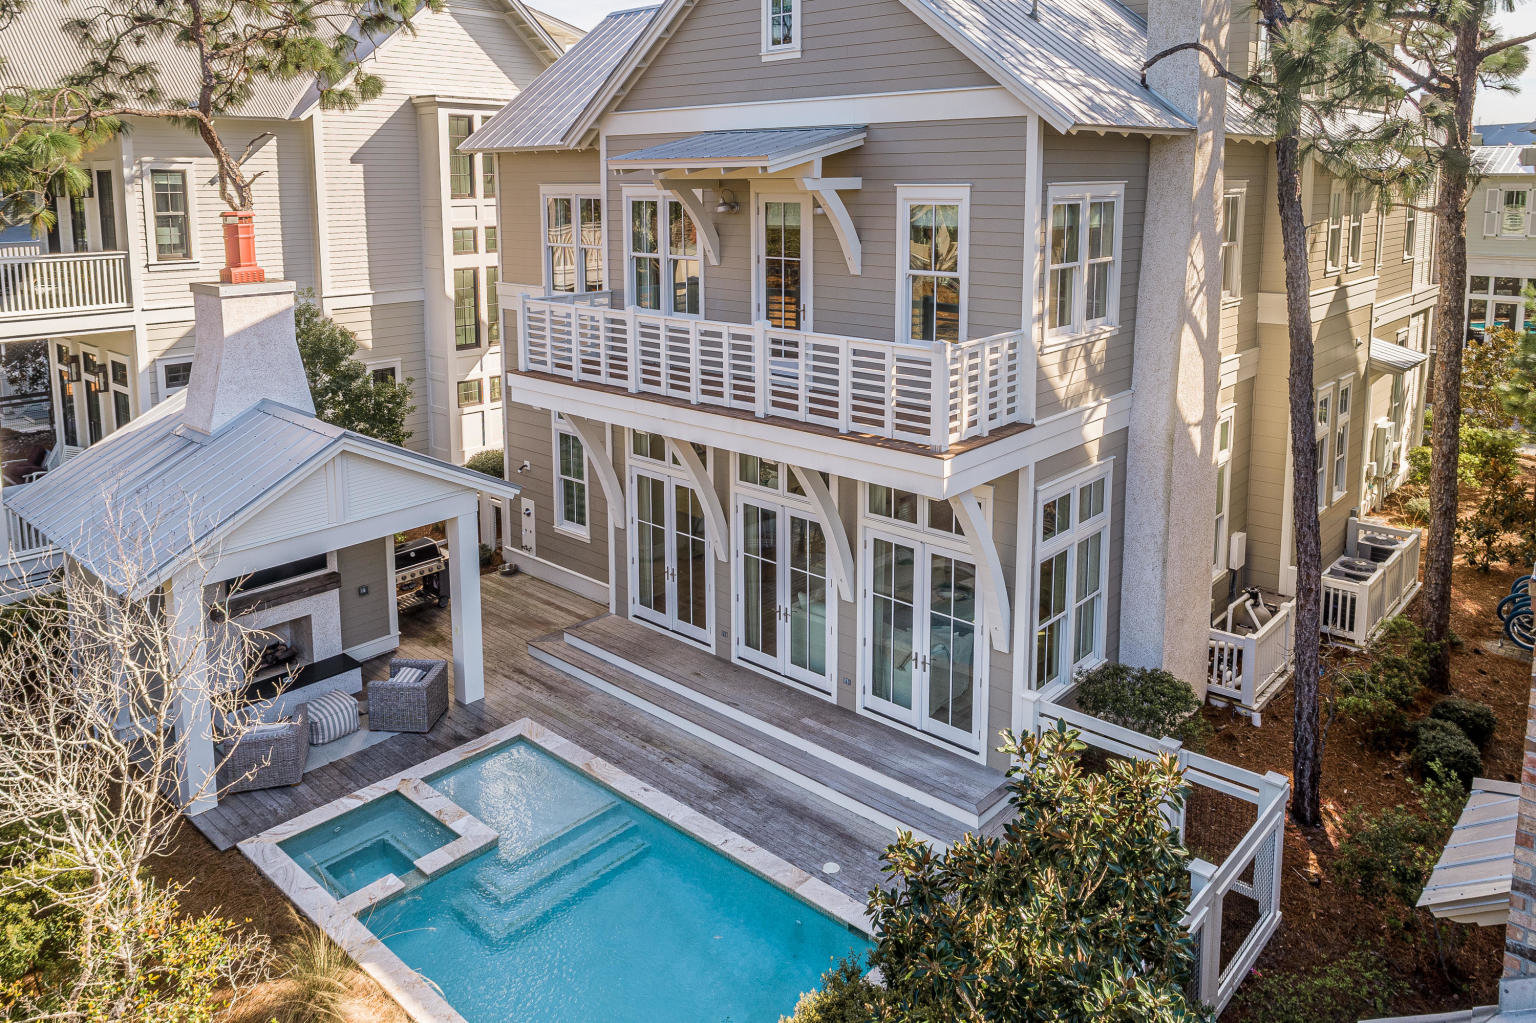 Beautiful homes in Watercolor for sale Live 30a